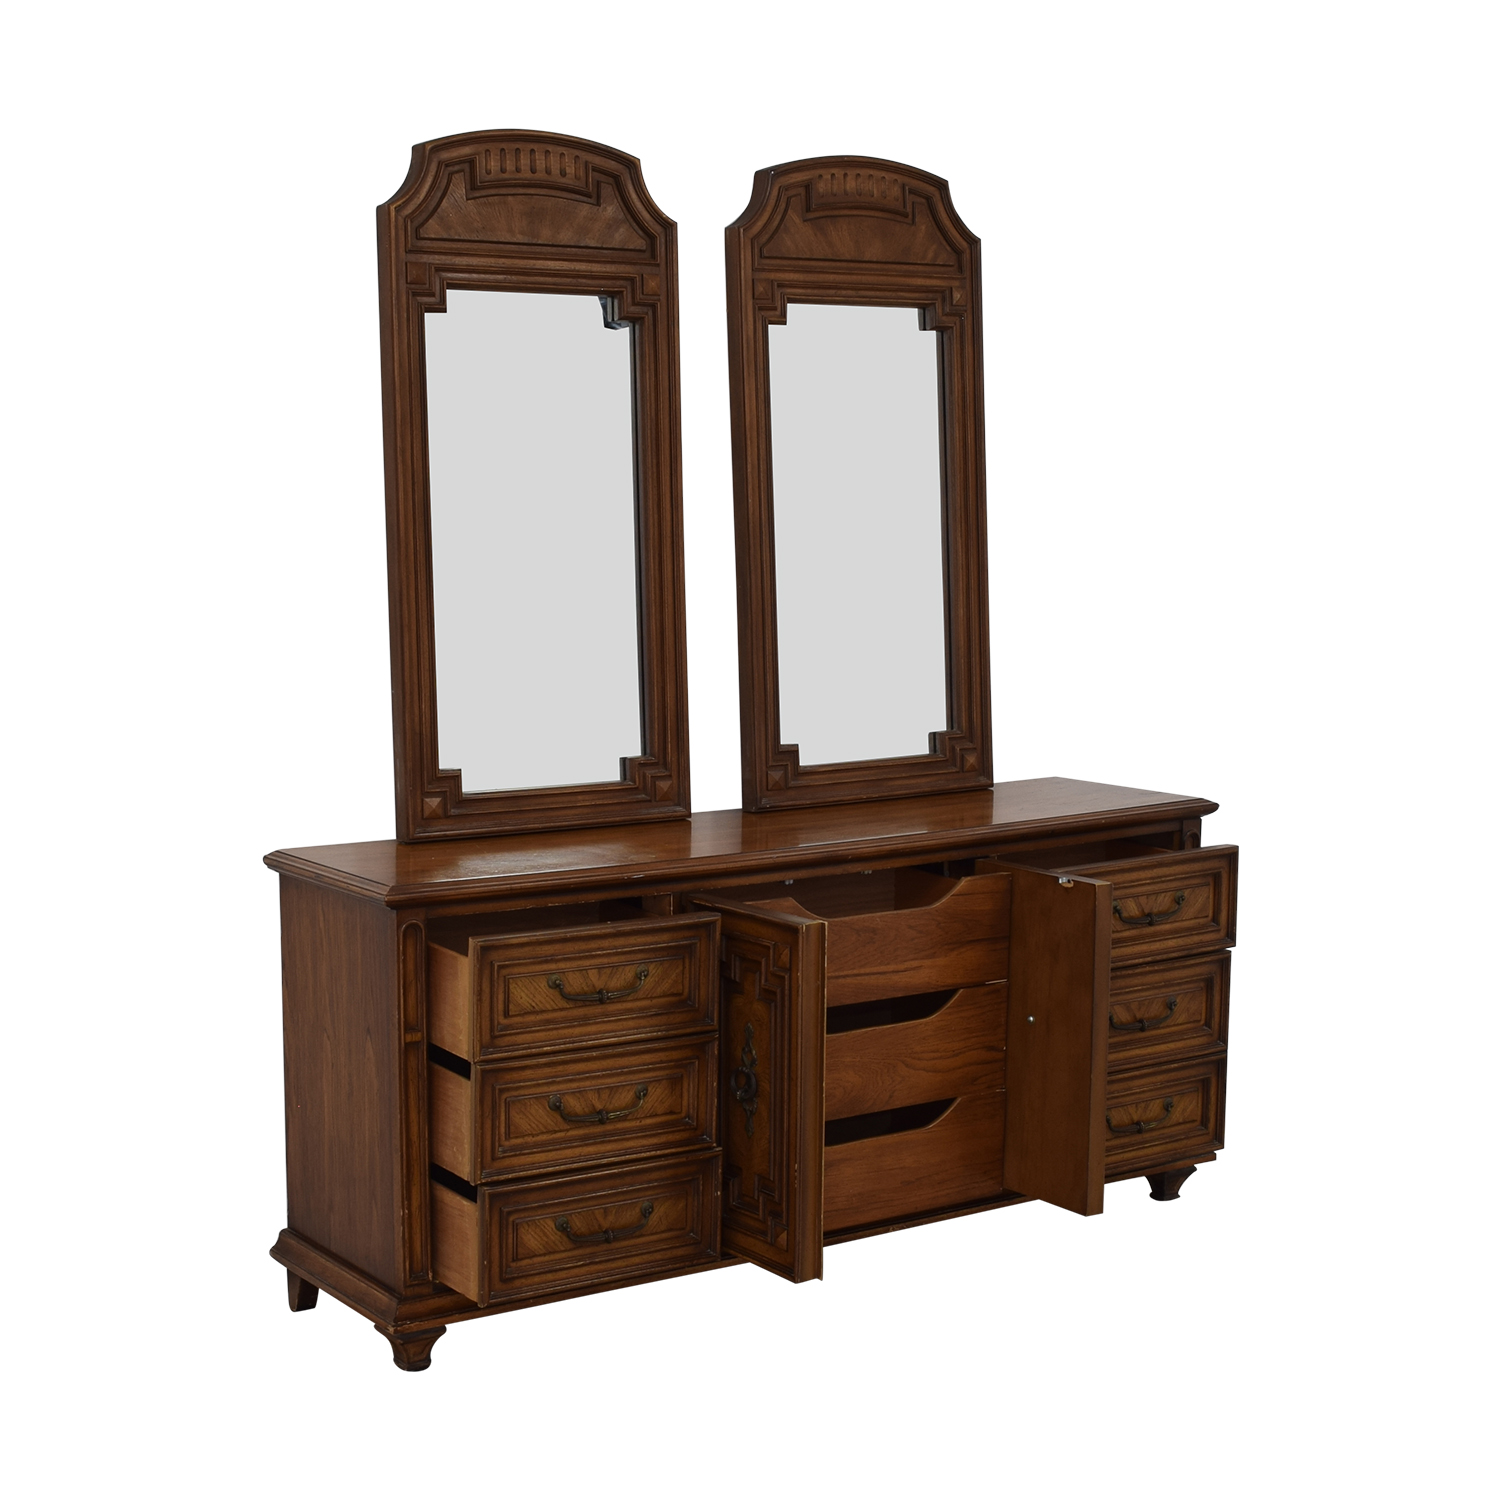 Vintage Dresser with Two Mirrors price